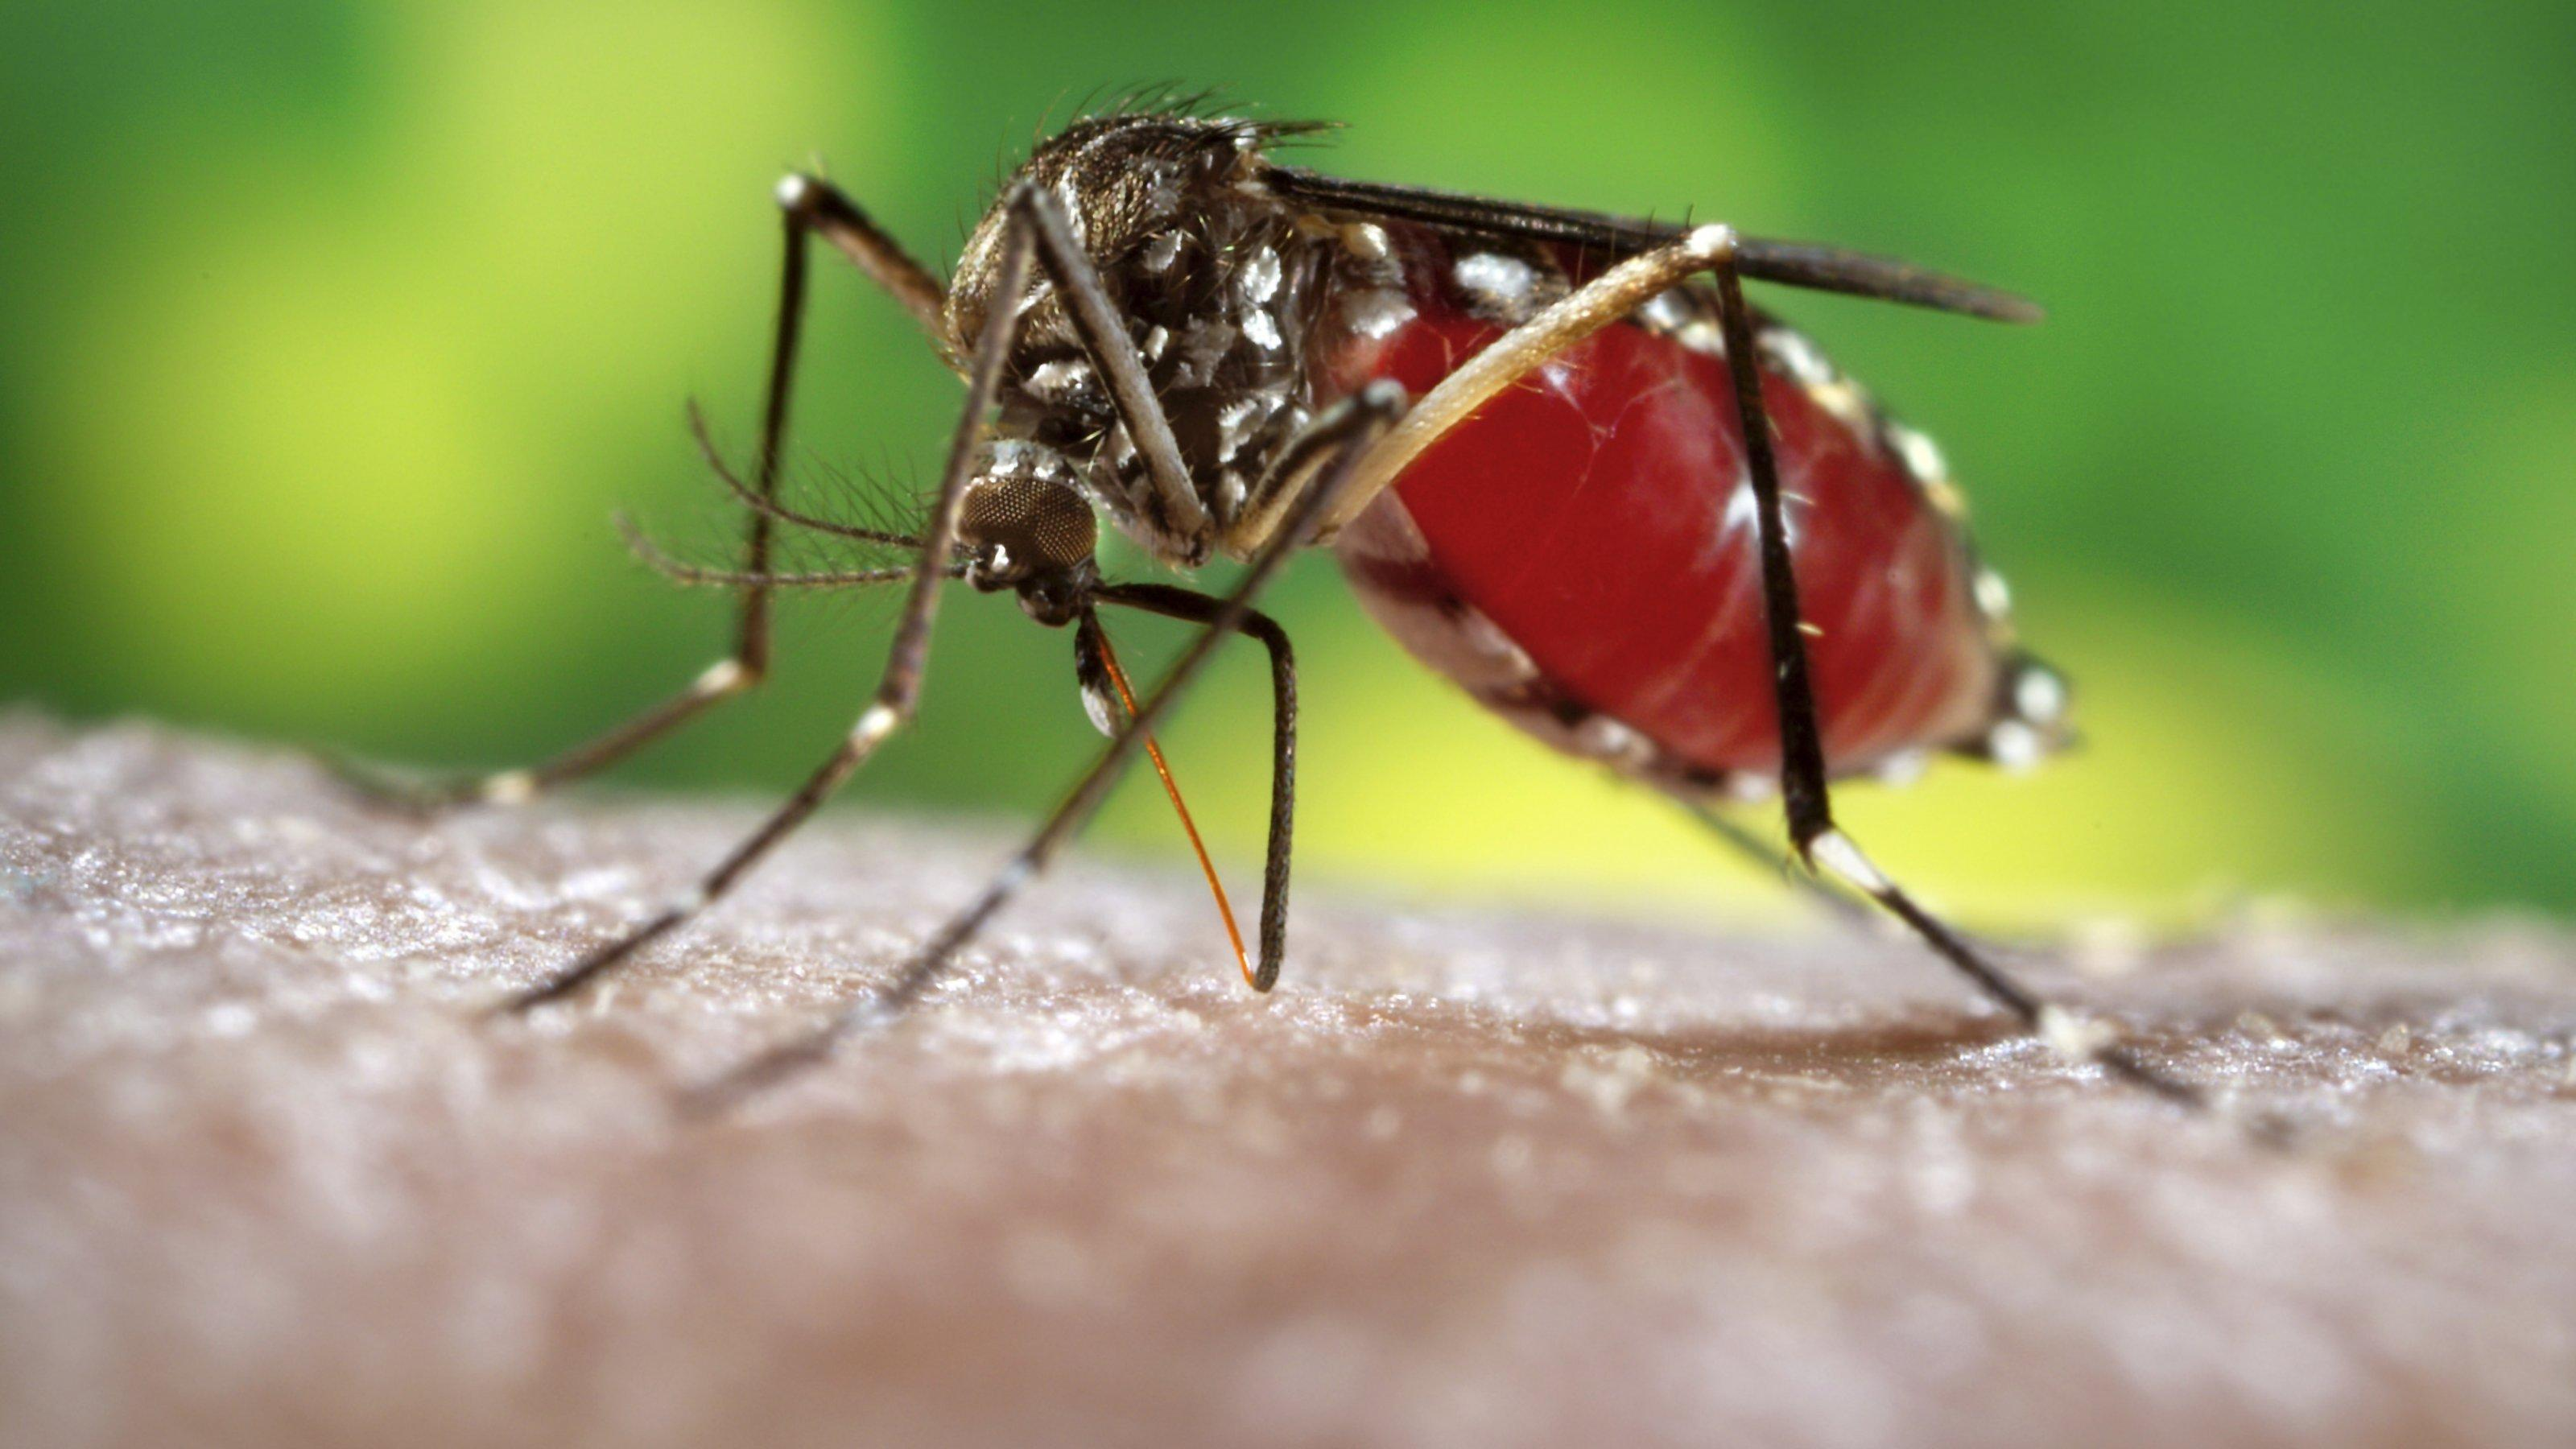 """A female, Aedes aegypti mosquito obtaining a blood meal from a human host. Original image sourced from US Government department: Public Health Image Library, Centers for Disease Control and Prevention. Under US law this image is copyright free, please credit the government department whenever you can""""."""